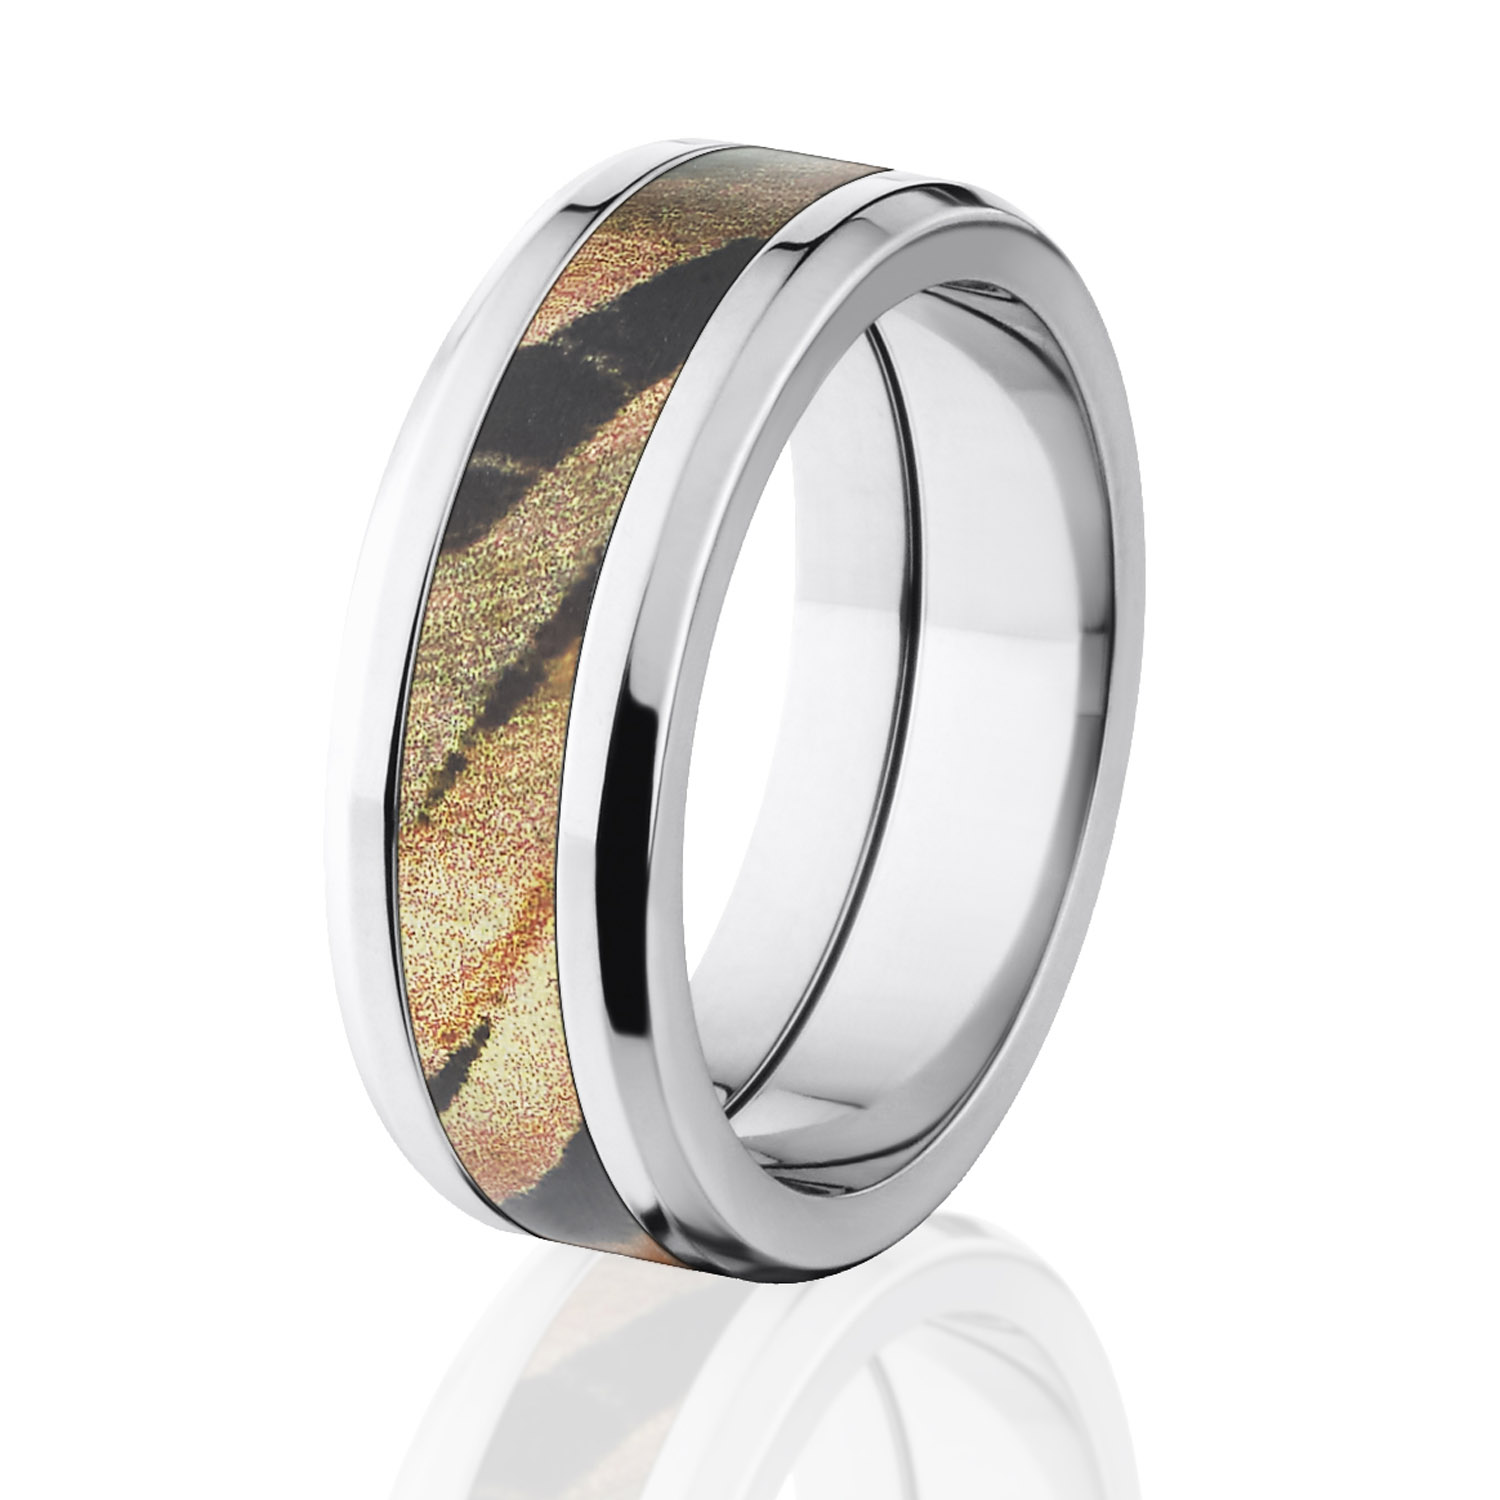 mossy oak rings camouflage wedding bands titanium ring